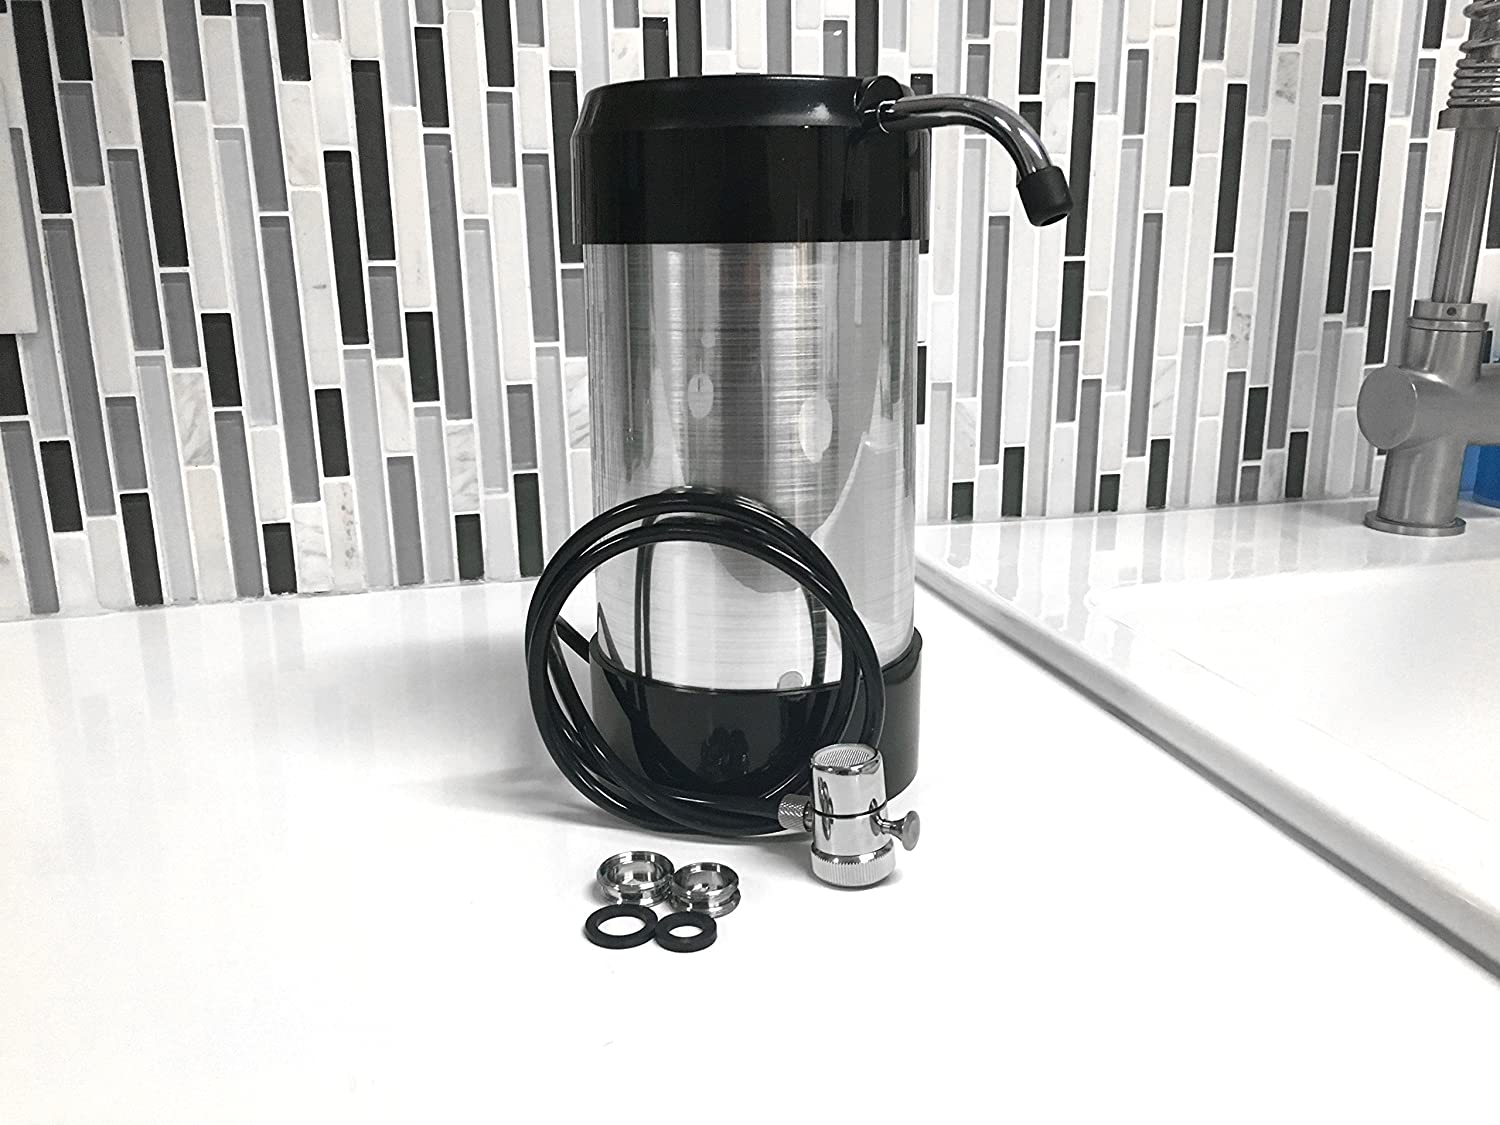 CleanWater4Less® Countertop Water Filter in real life